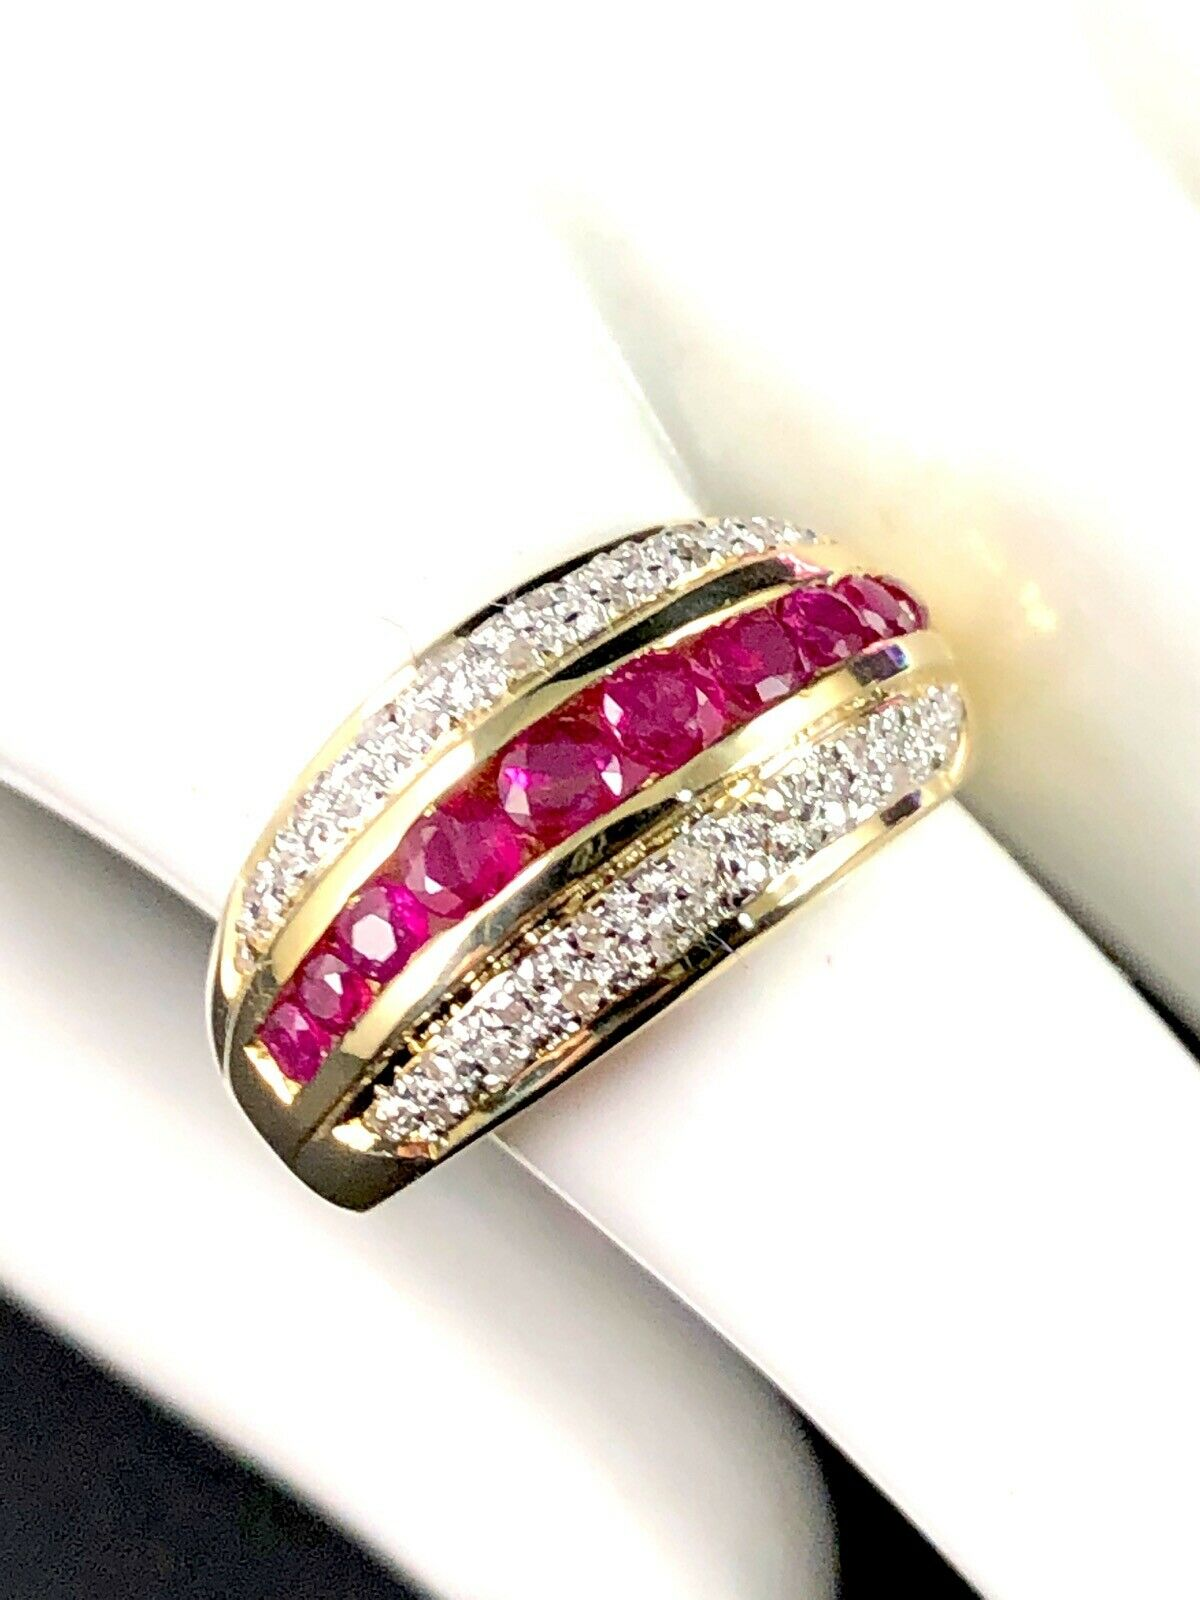 14K SOLID YELLOW gold .55 CTW RUBY 34 PAVE NATURAL DIAMOND CHANNEL SET RING 6.5